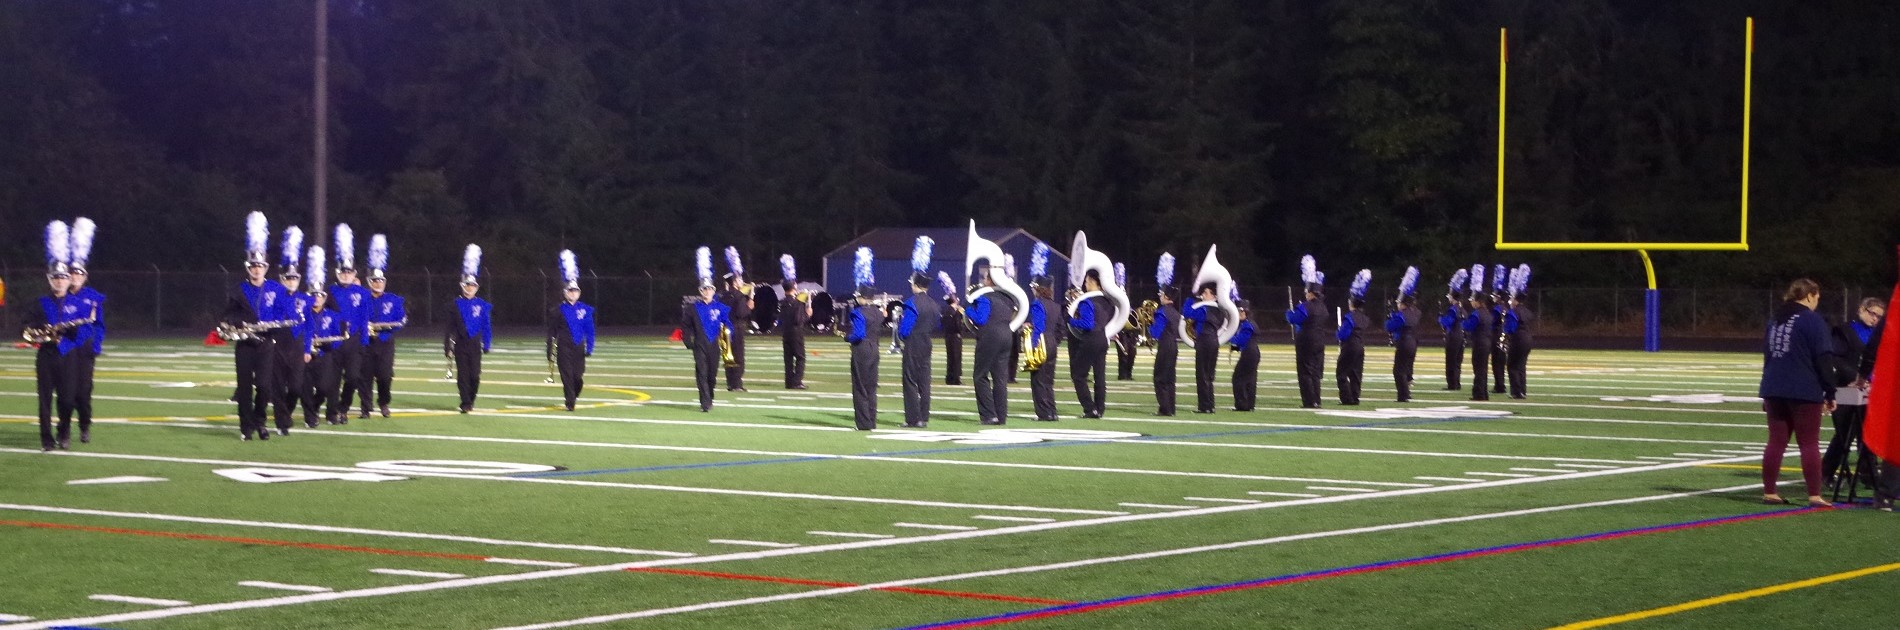 NMHS marching band performs on the field.